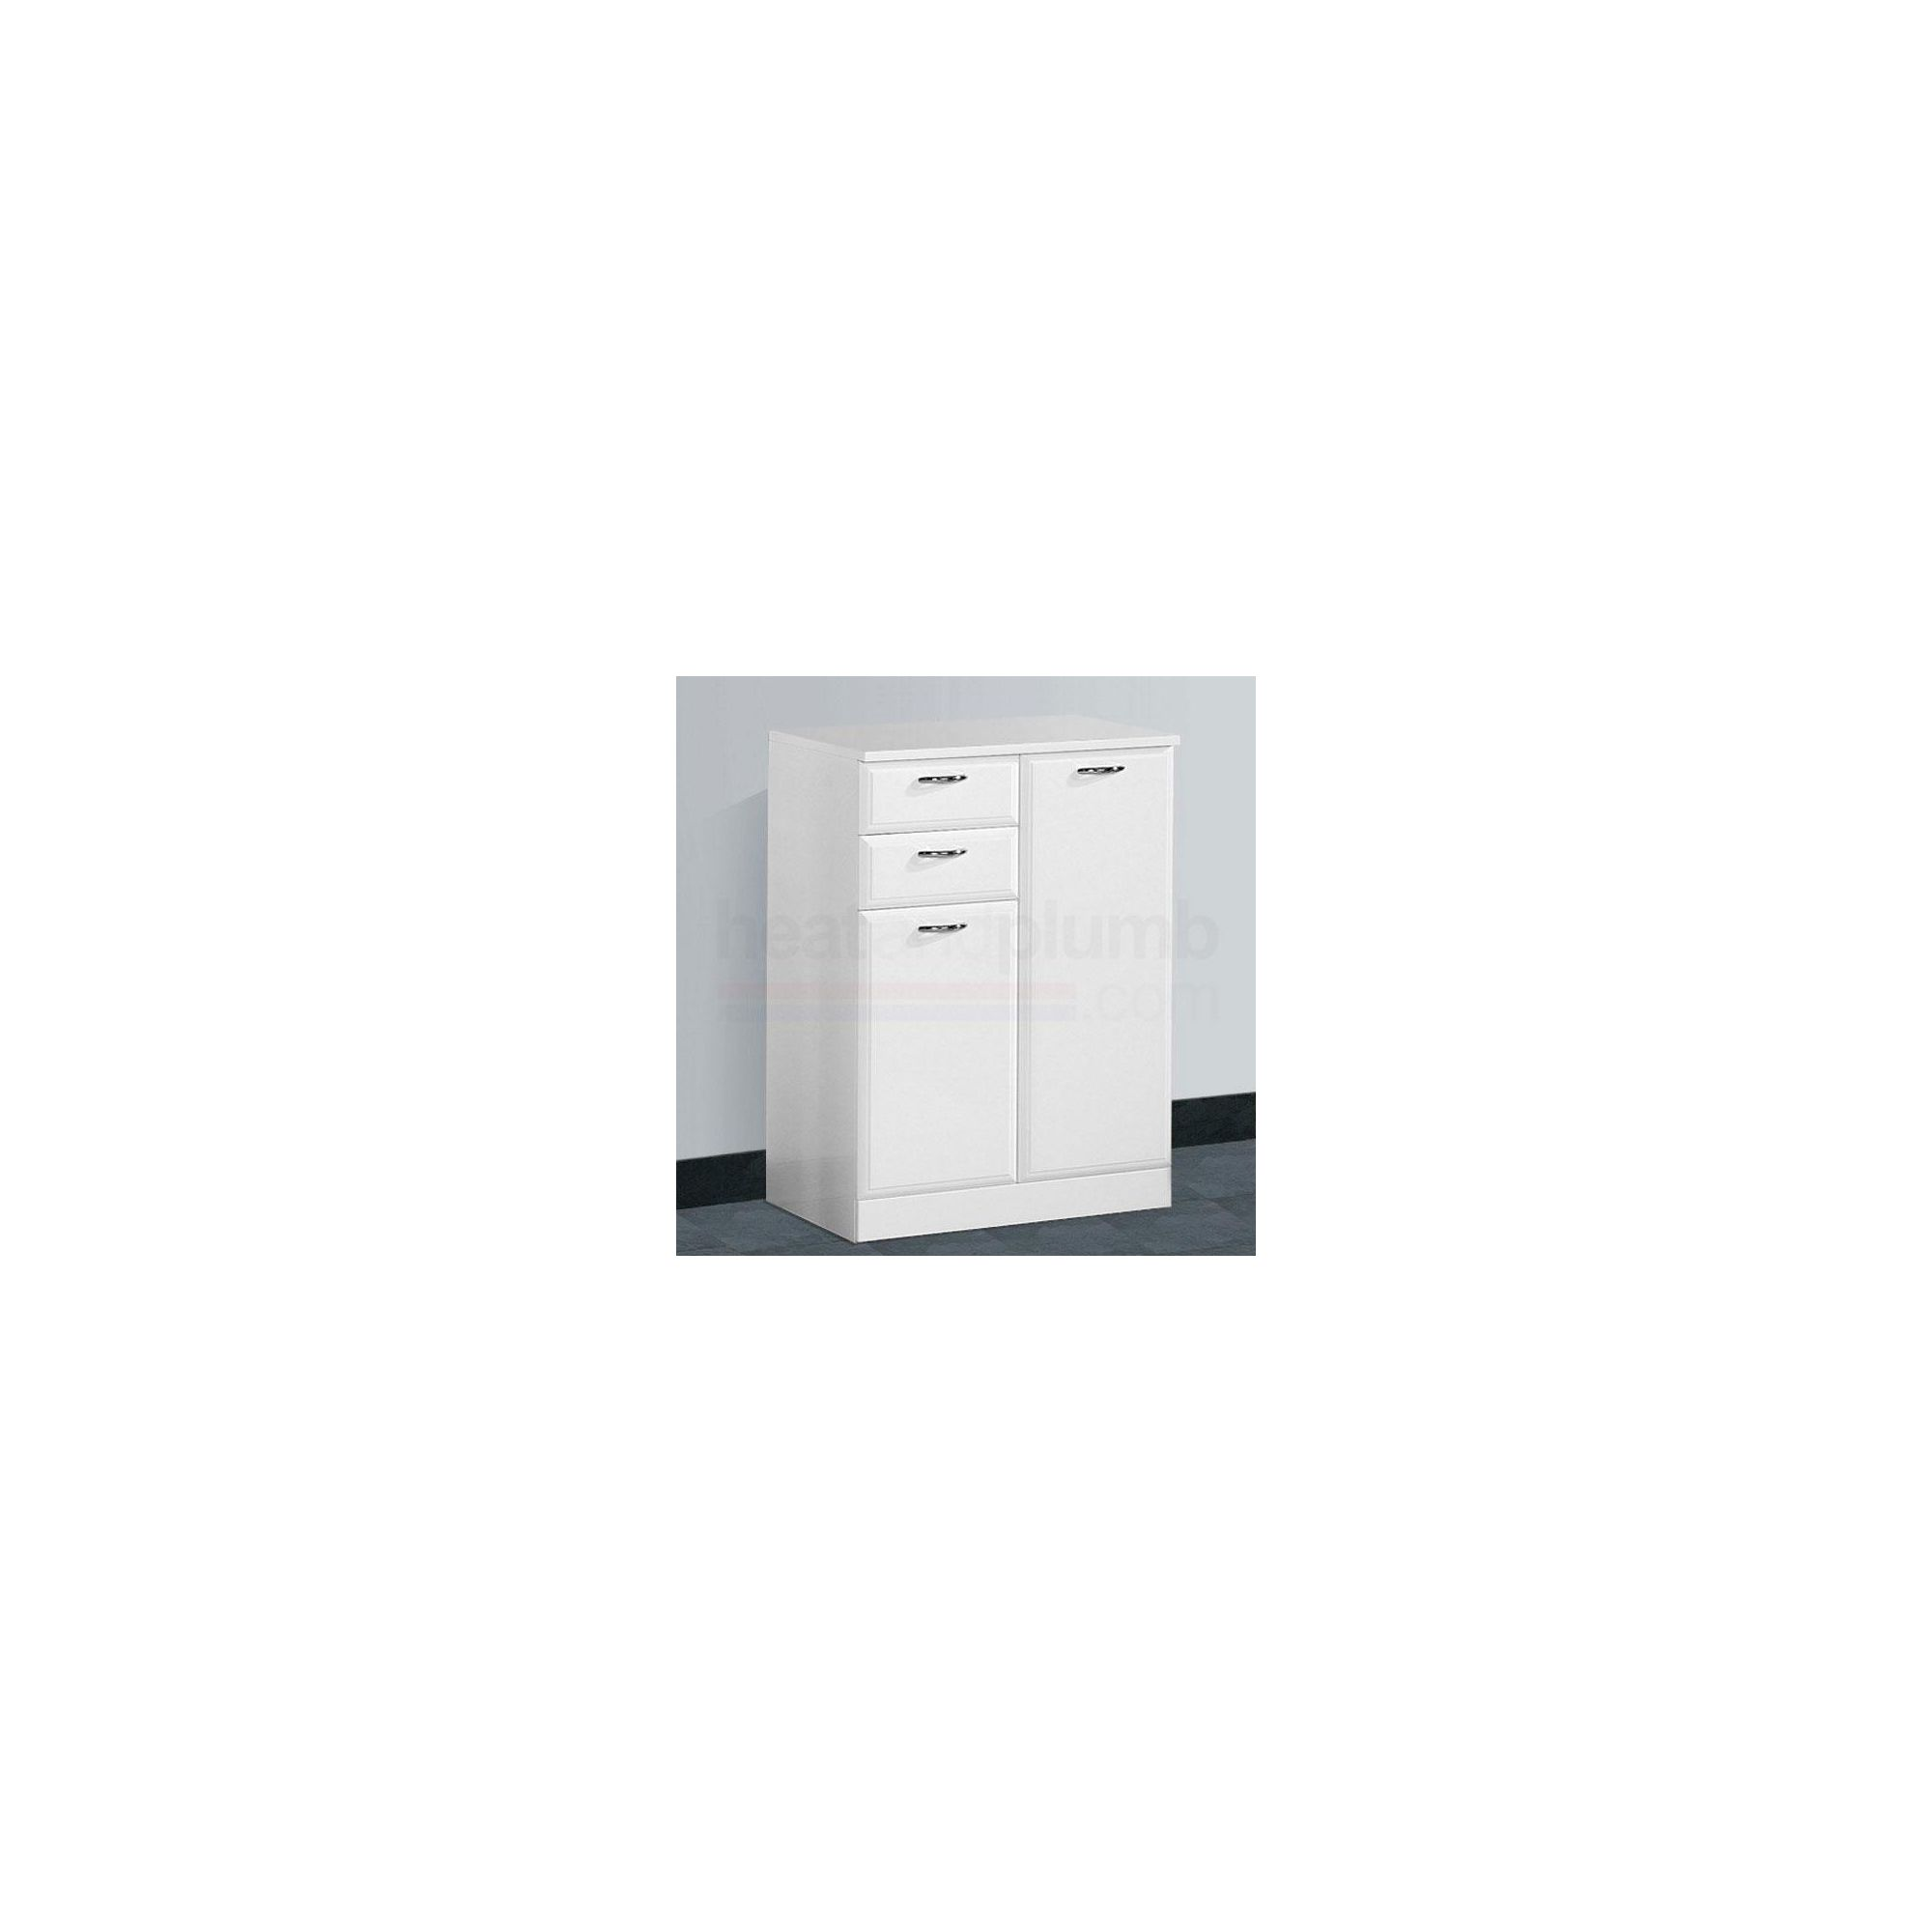 HiB Denia Base Unit 810mm High x 600mm Wide x 380mm Deep